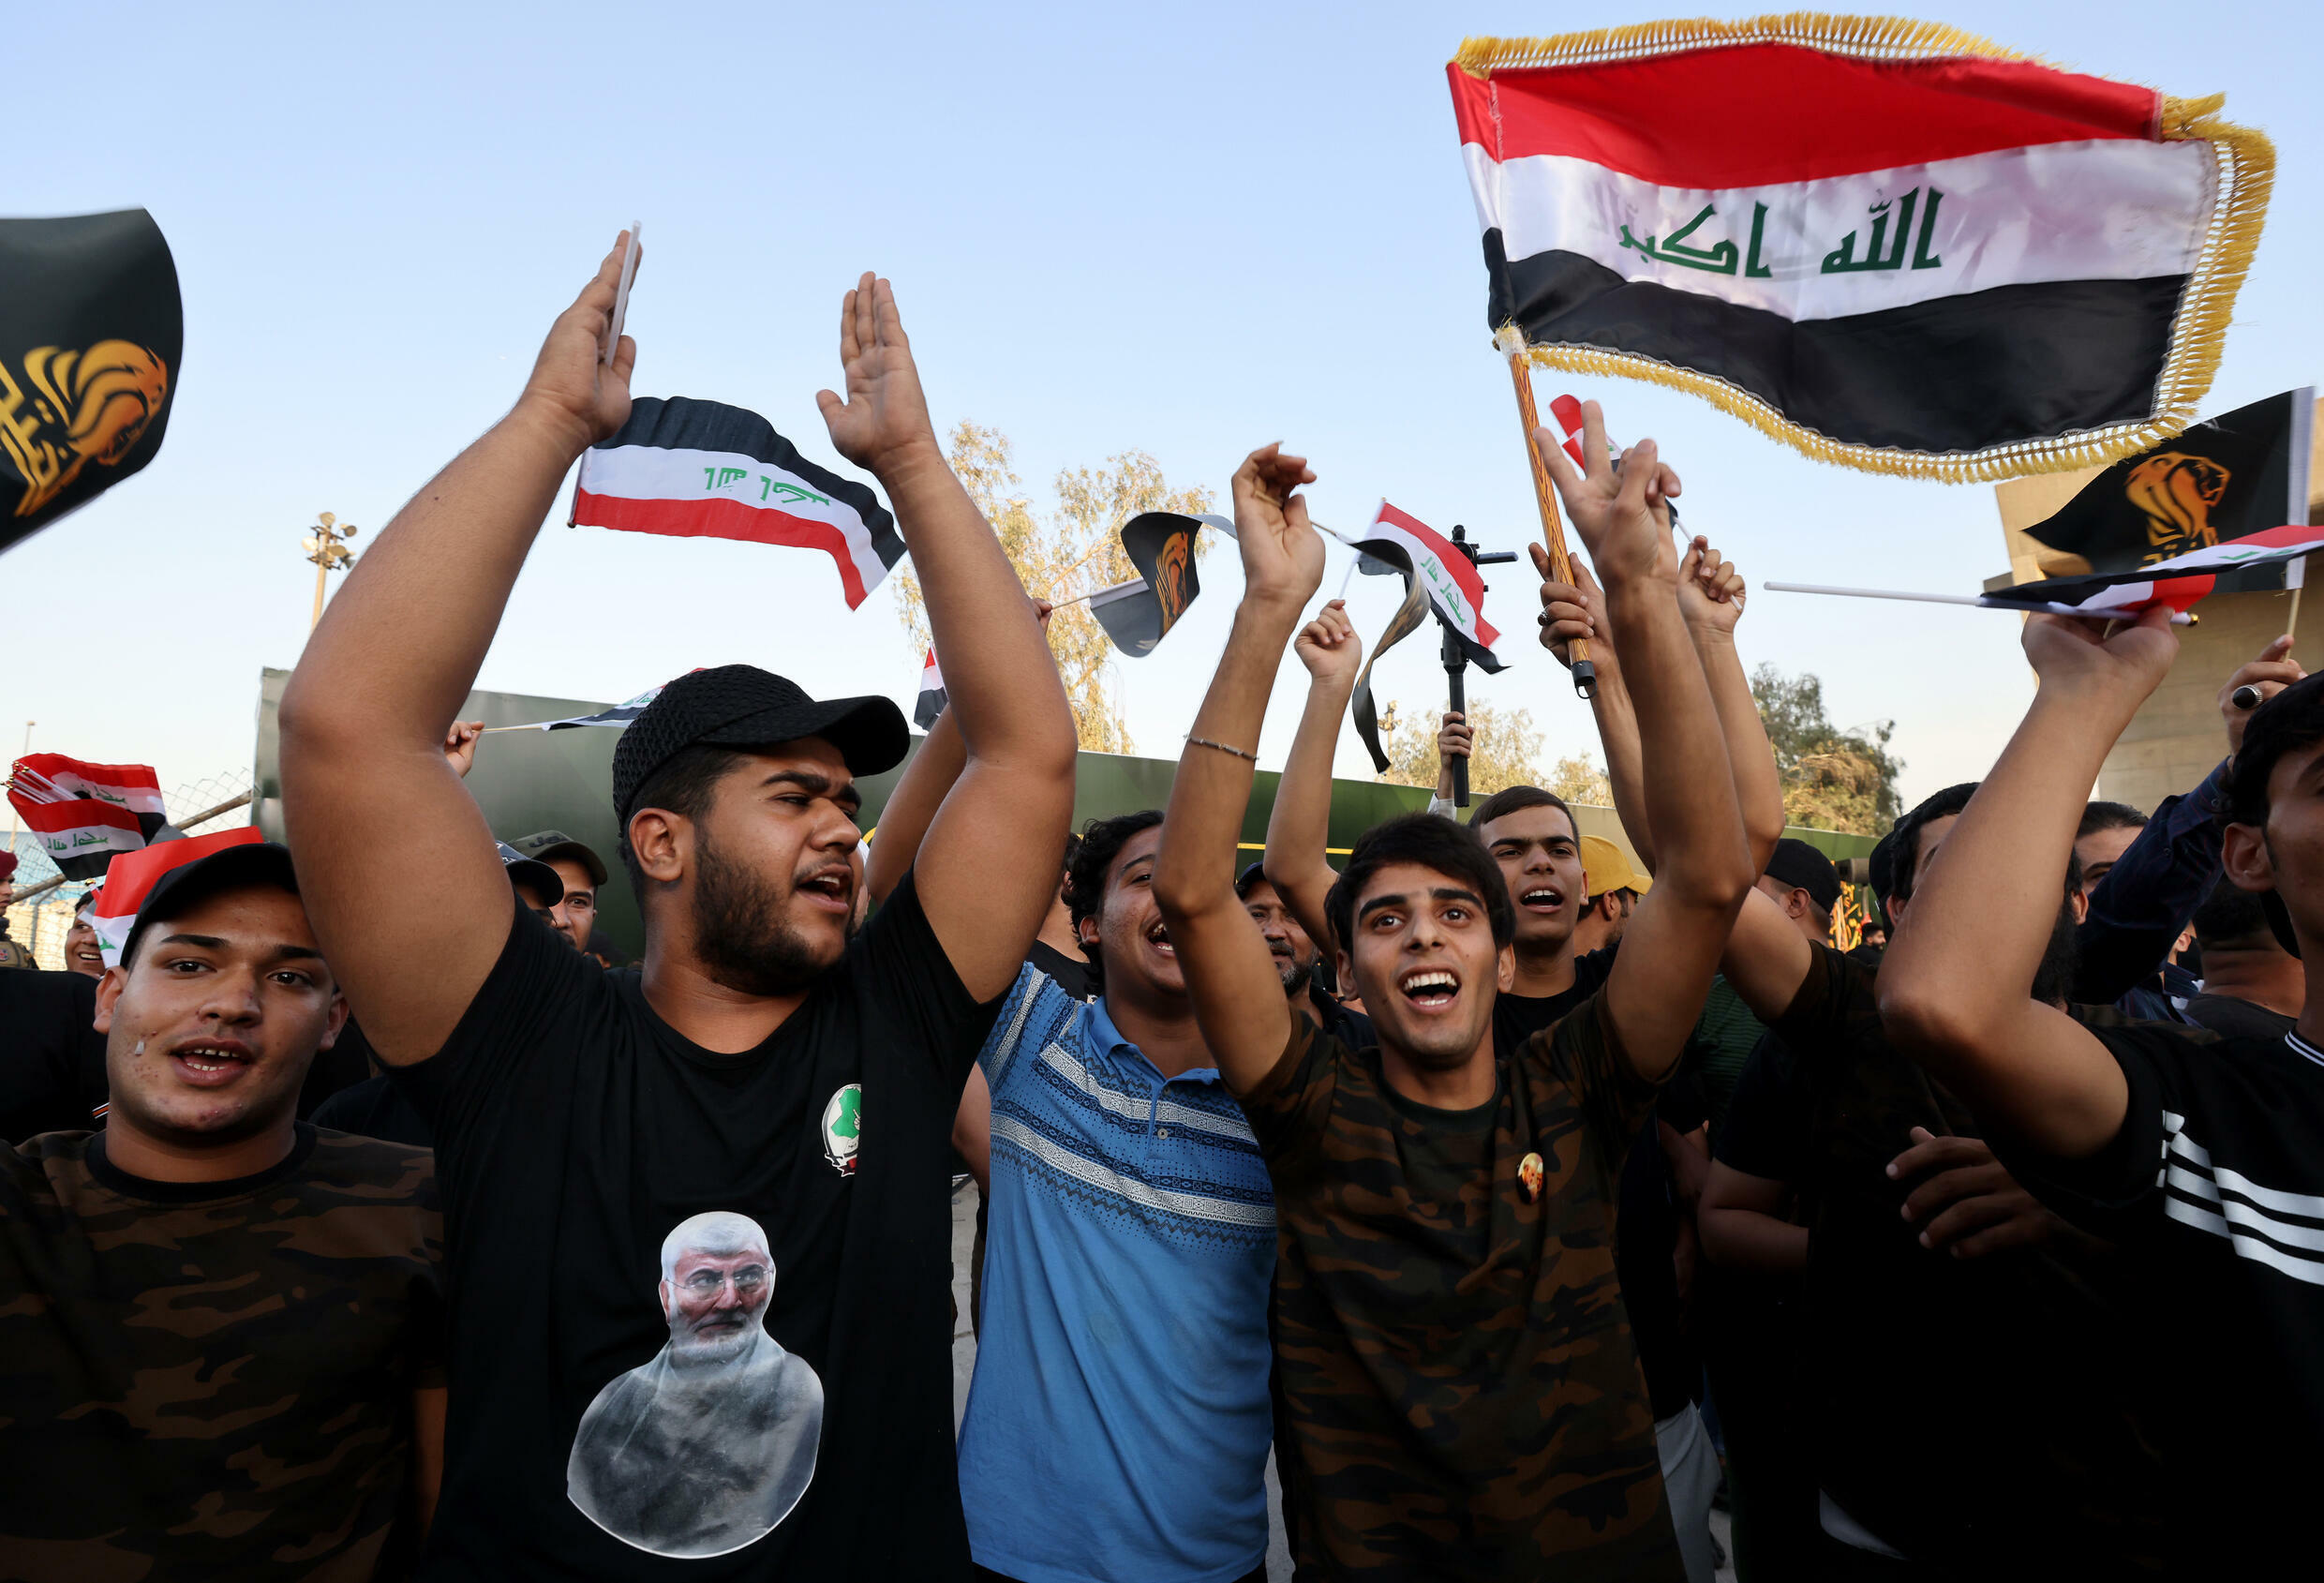 Supporters of the Iraqi Fatah alliance - which held the second largest bloc in parliament - attend election rally in Baghdad